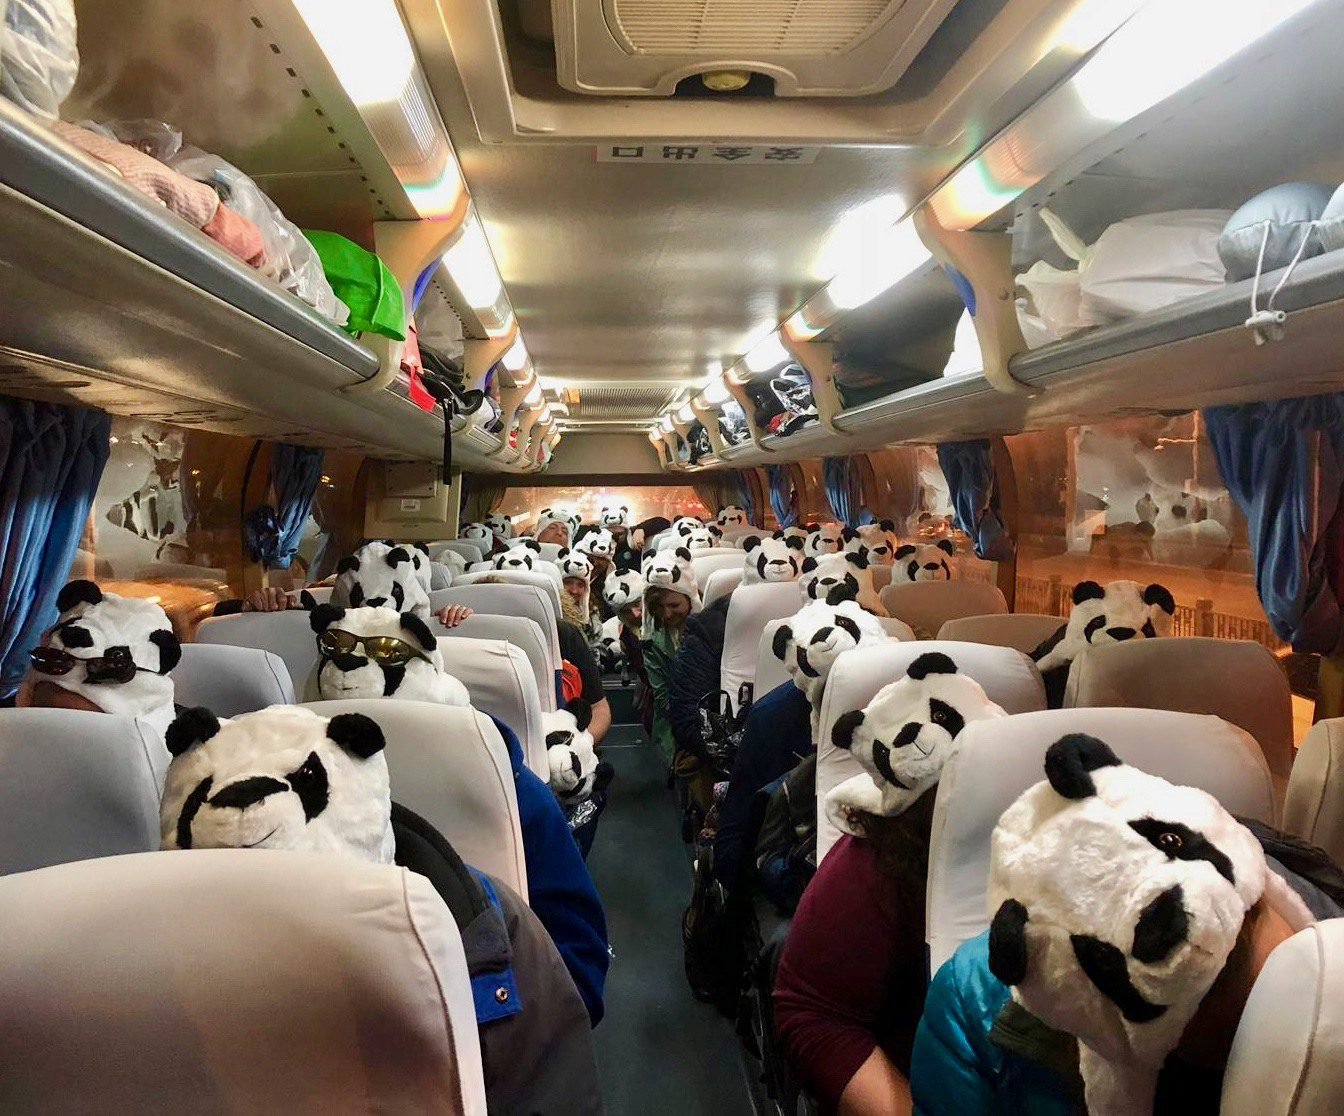 Dressed like pandas on the bus in Beijing, warming up for karaoke.